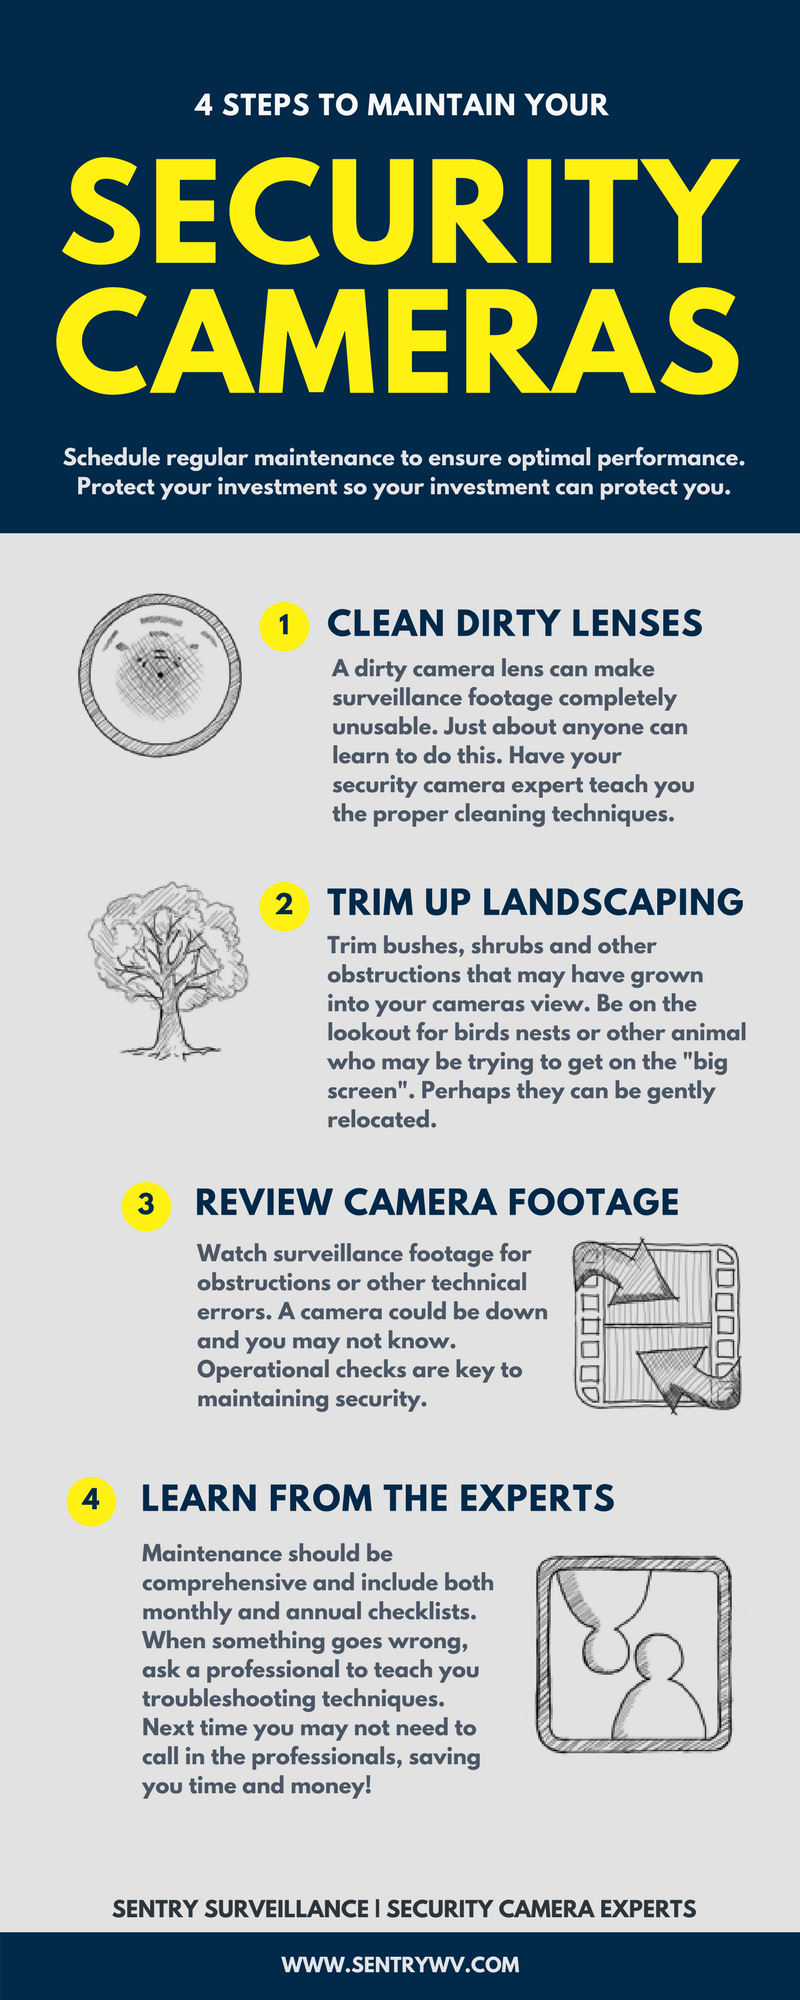 4 Steps To Maintain Your Security Cameras